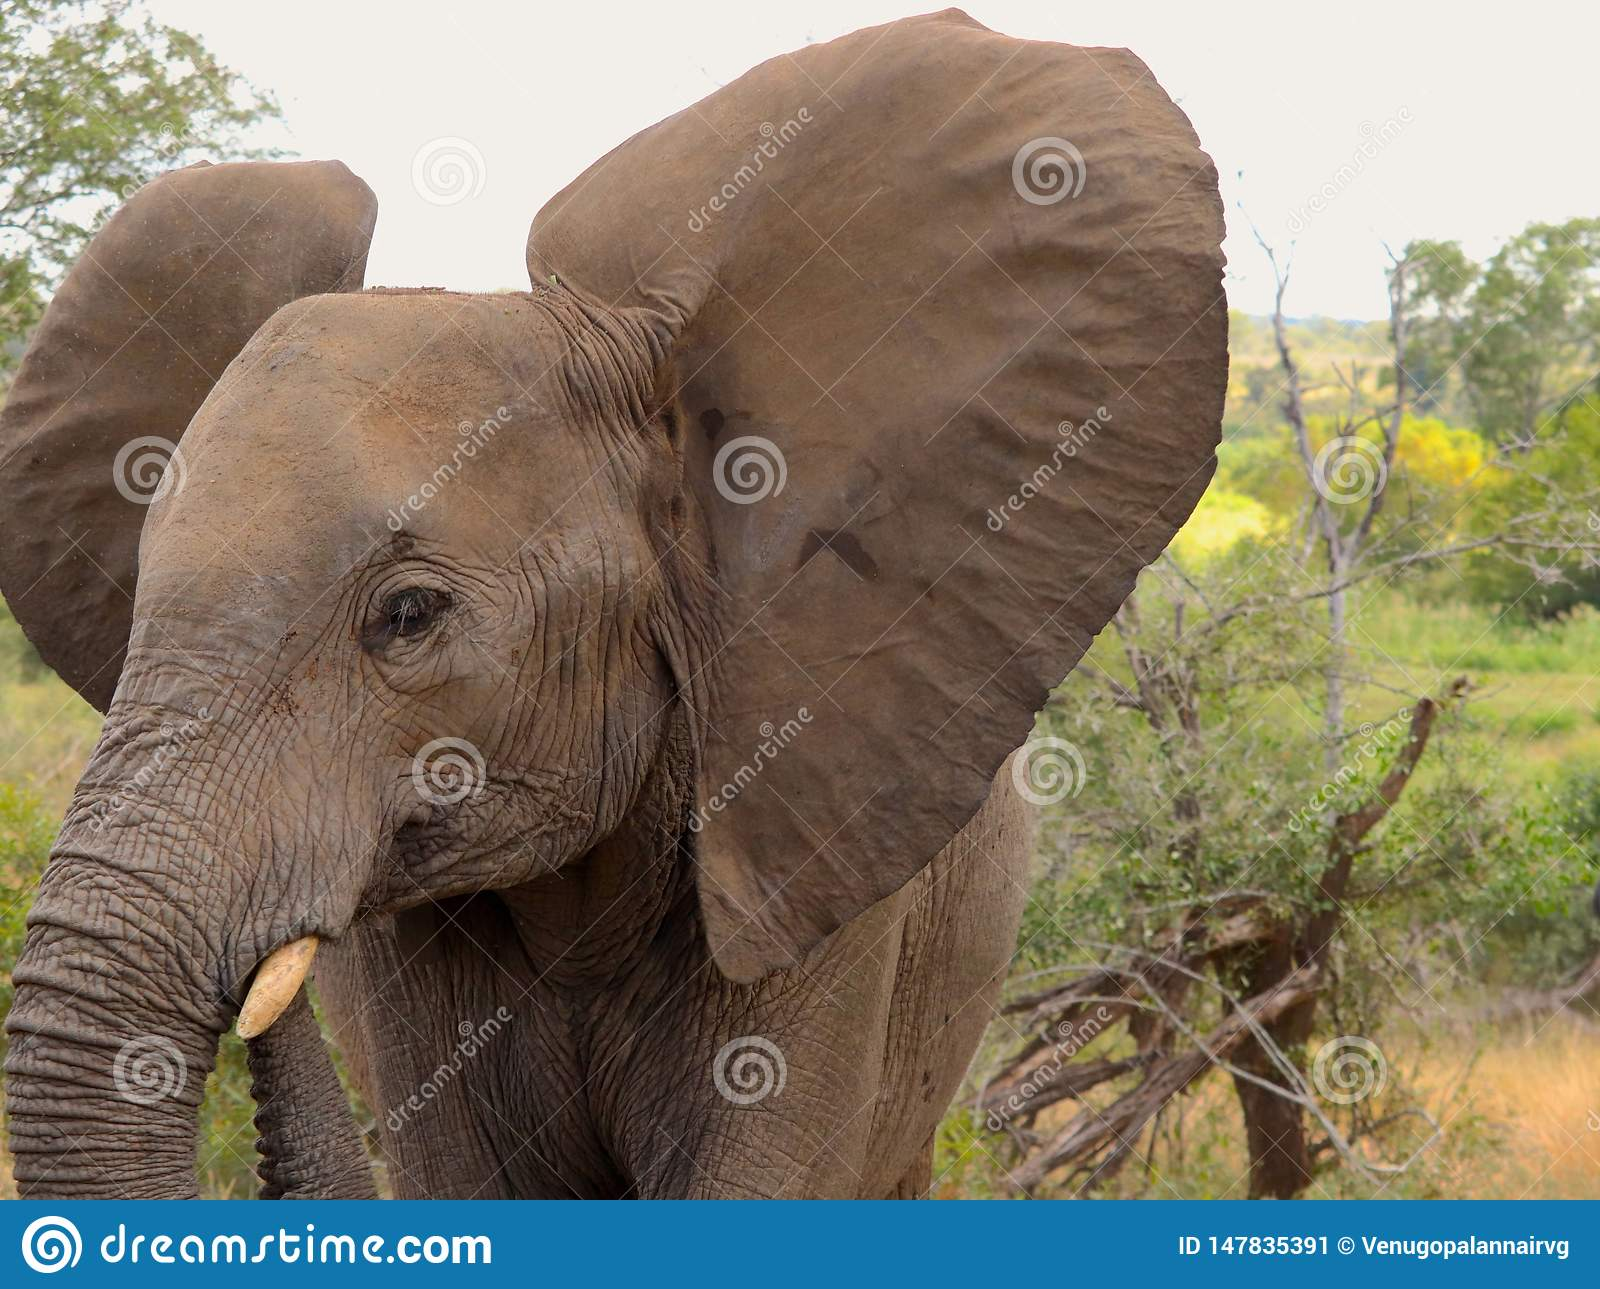 Baby elephant showing off its giant ears at Kruger safari